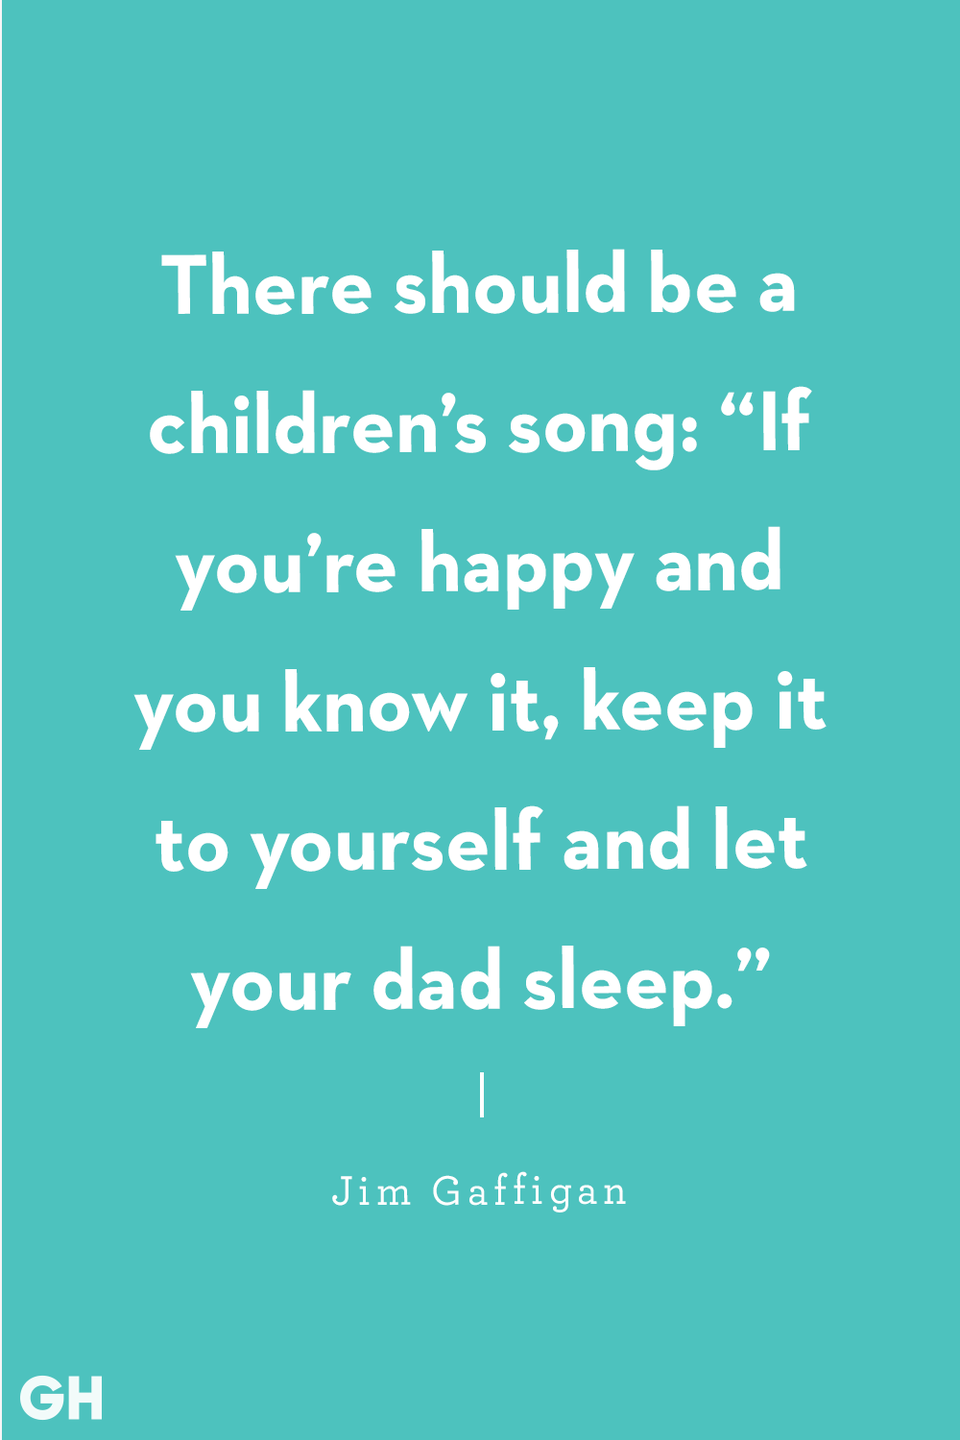 <p>There should be a children's song: 'If you're happy and you know it, keep it to yourself and let your dad sleep.'</p>